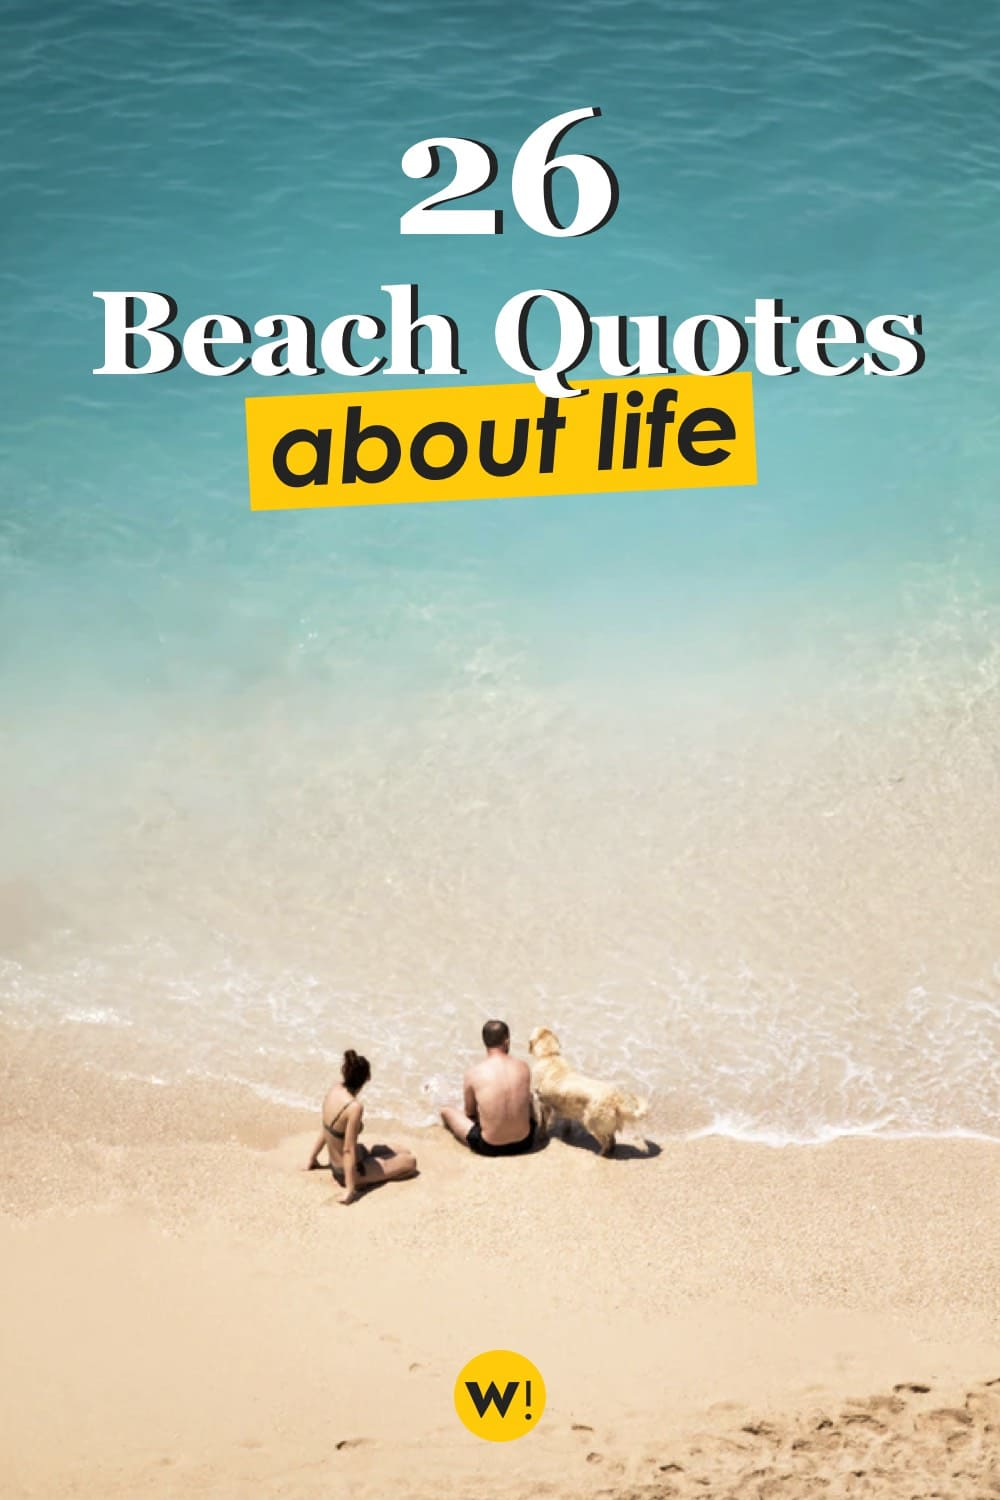 Living your best beach life? And looking for some great beach life quotes to caption your adventures? This is exactly what you'll find below! Oh and also a few beach quotes about life, for more inspiration. beach quotes inspirational life |lifes a beach quotes |life quotes inspirational |beach sayings and quotes |beach quotes inspirational ocean |beach quotes instagram caption